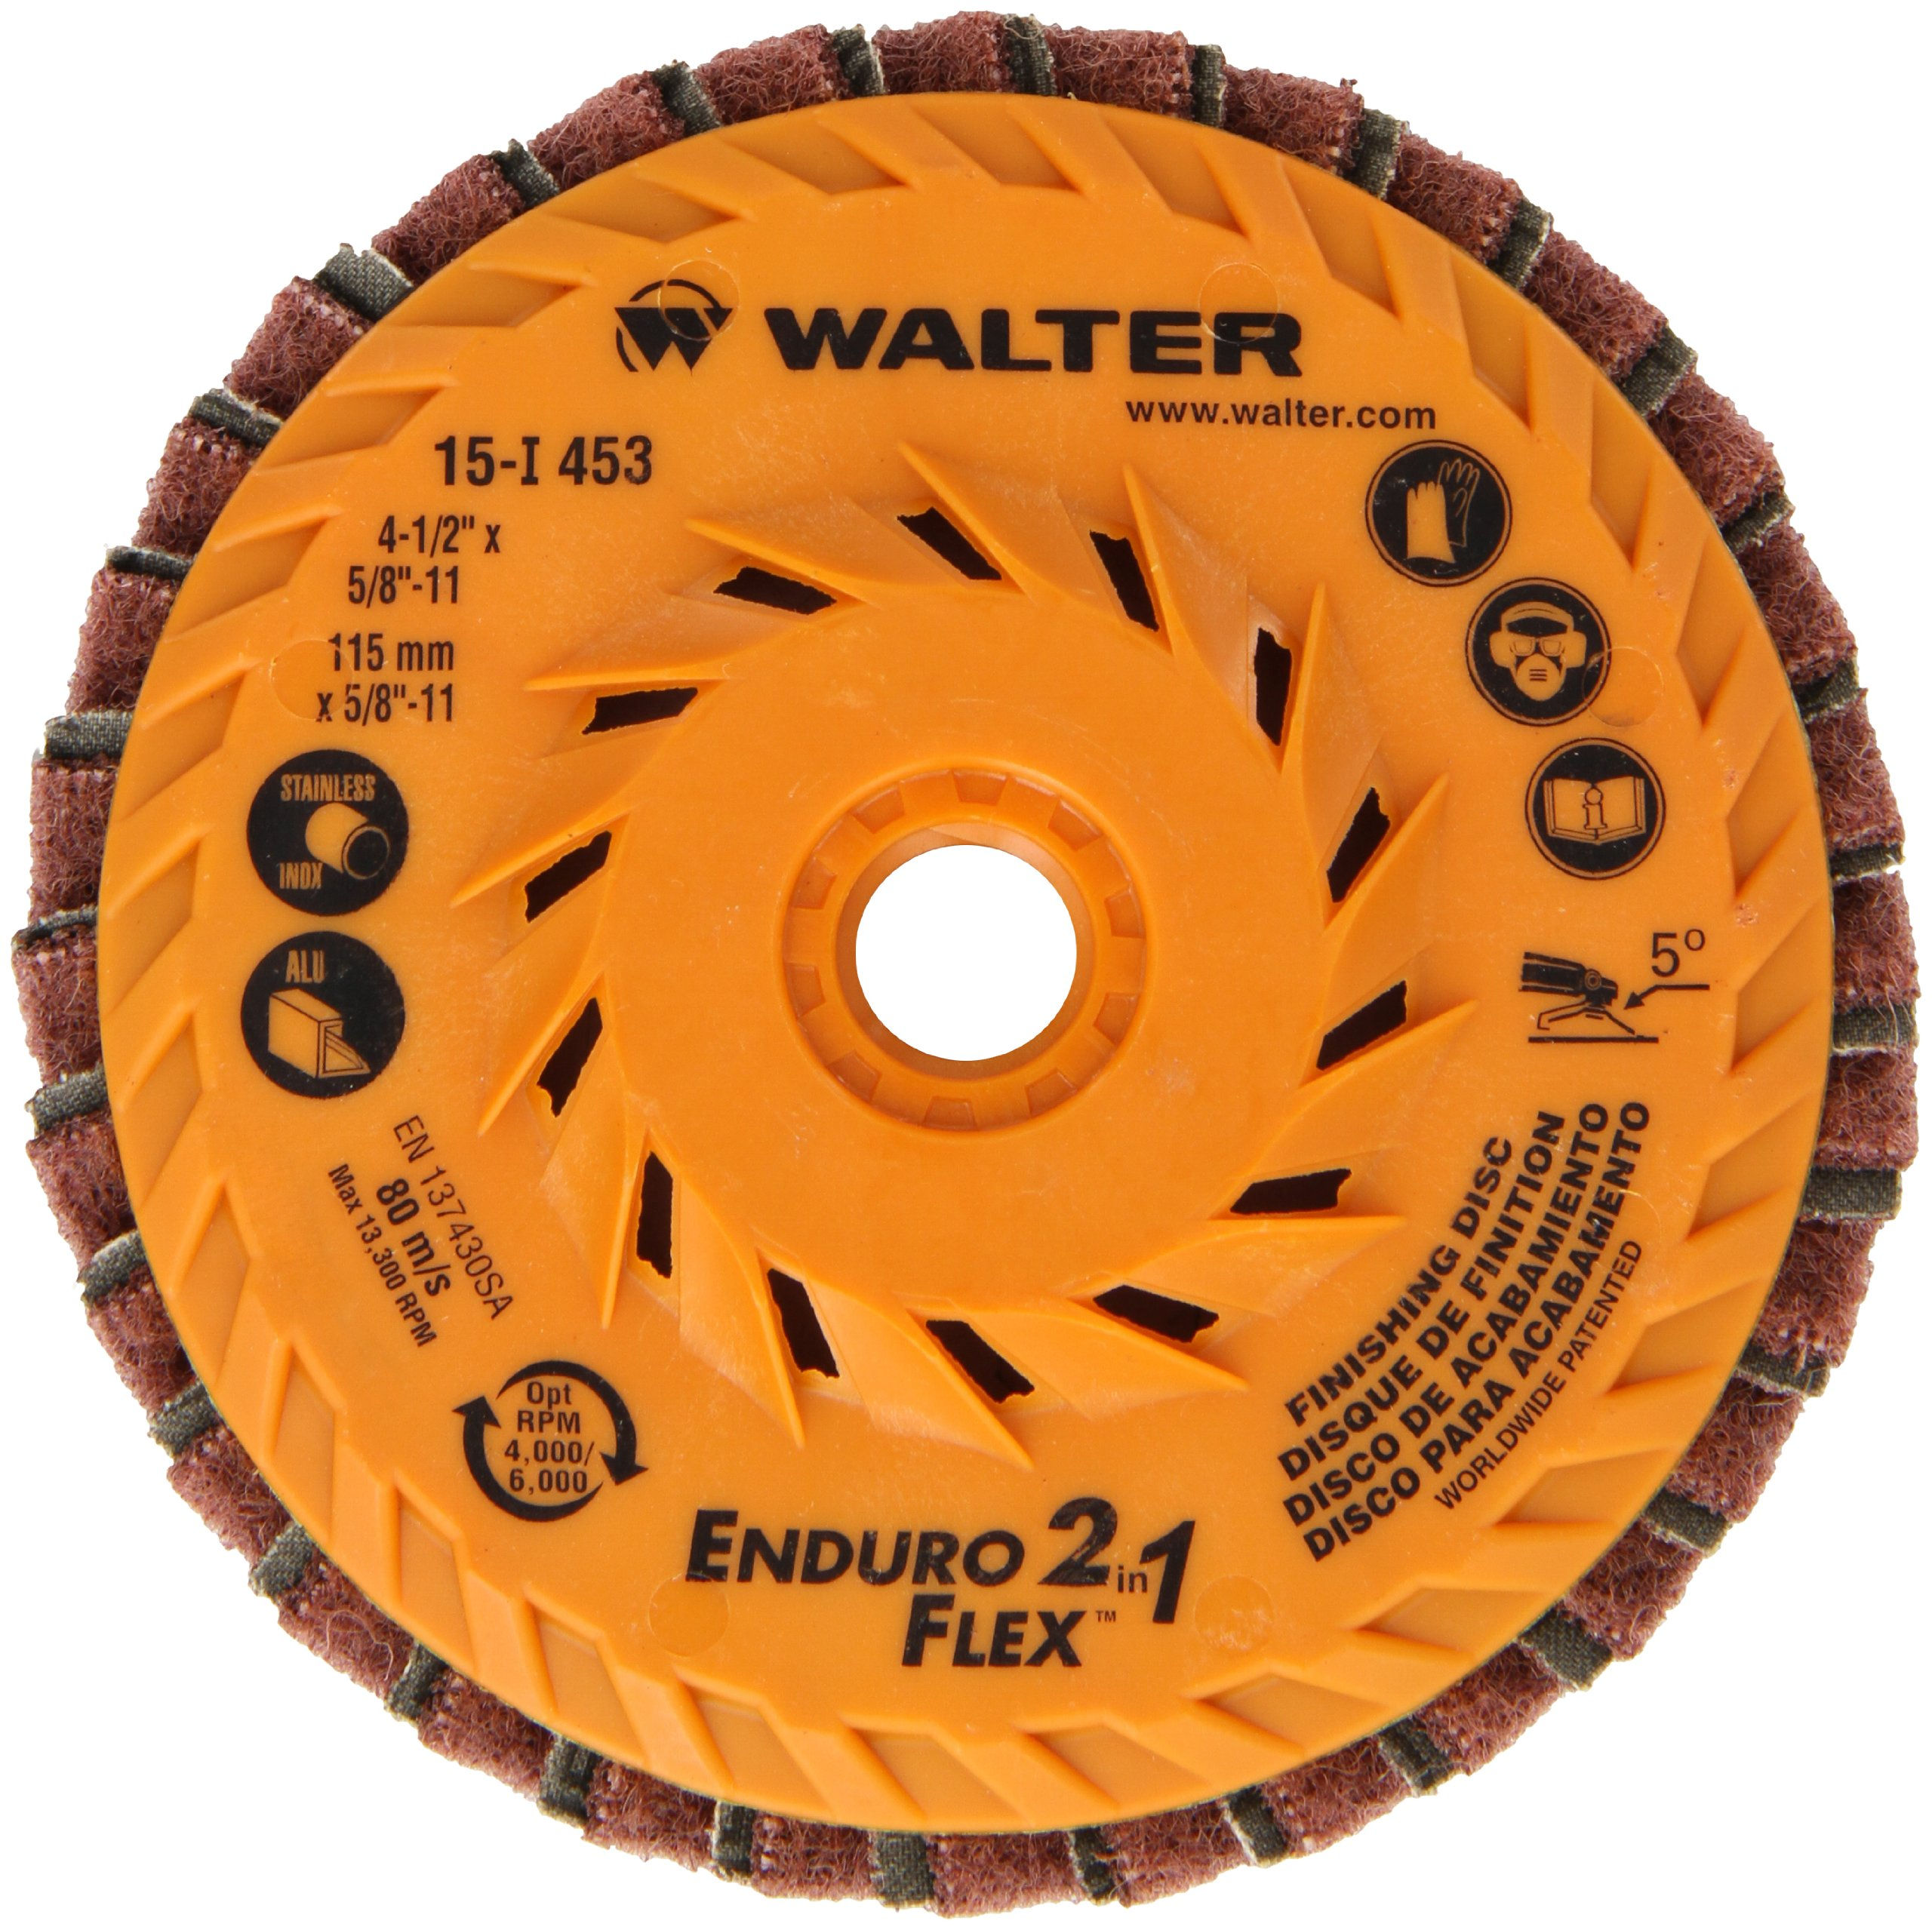 Walter Enduro-Flex 2 In 1 Abrasive Flap Disc, Type 29, 5/8''-11 Thread Size, Plastic Backing, Aluminum Oxide, 4-1/2'' Diameter (Pack of 10) by Walter Surface Technologies